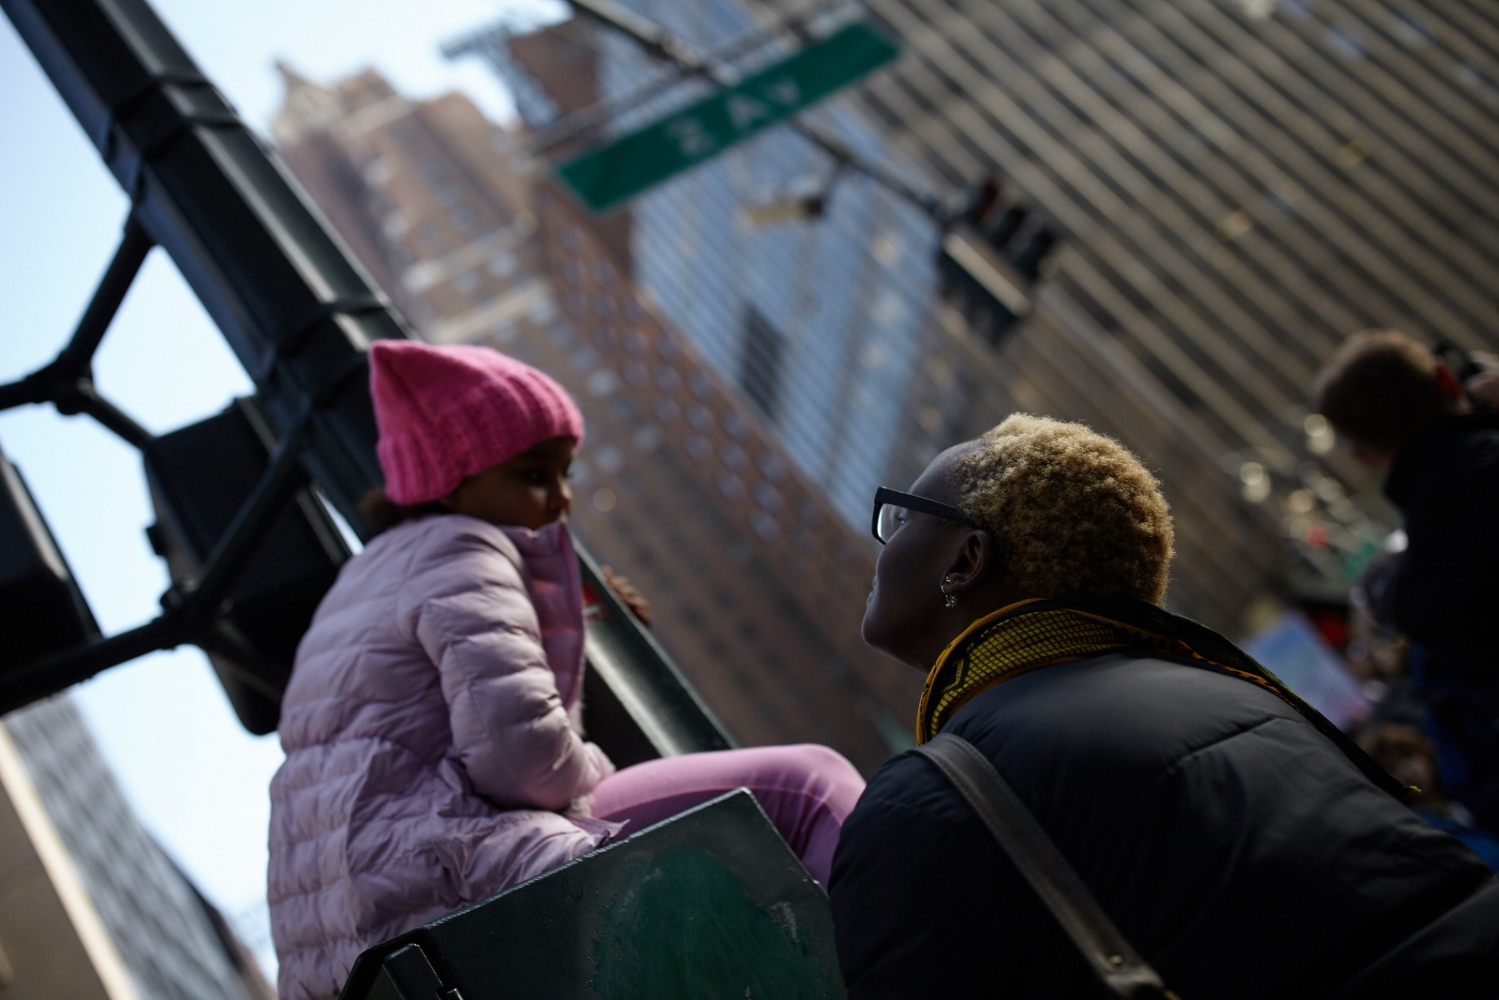 A child sits atop a traffic box and speaks to her mother near Dag Hammarskjold Plaza in Manhattan, New York, U.S. January 21, 2017.